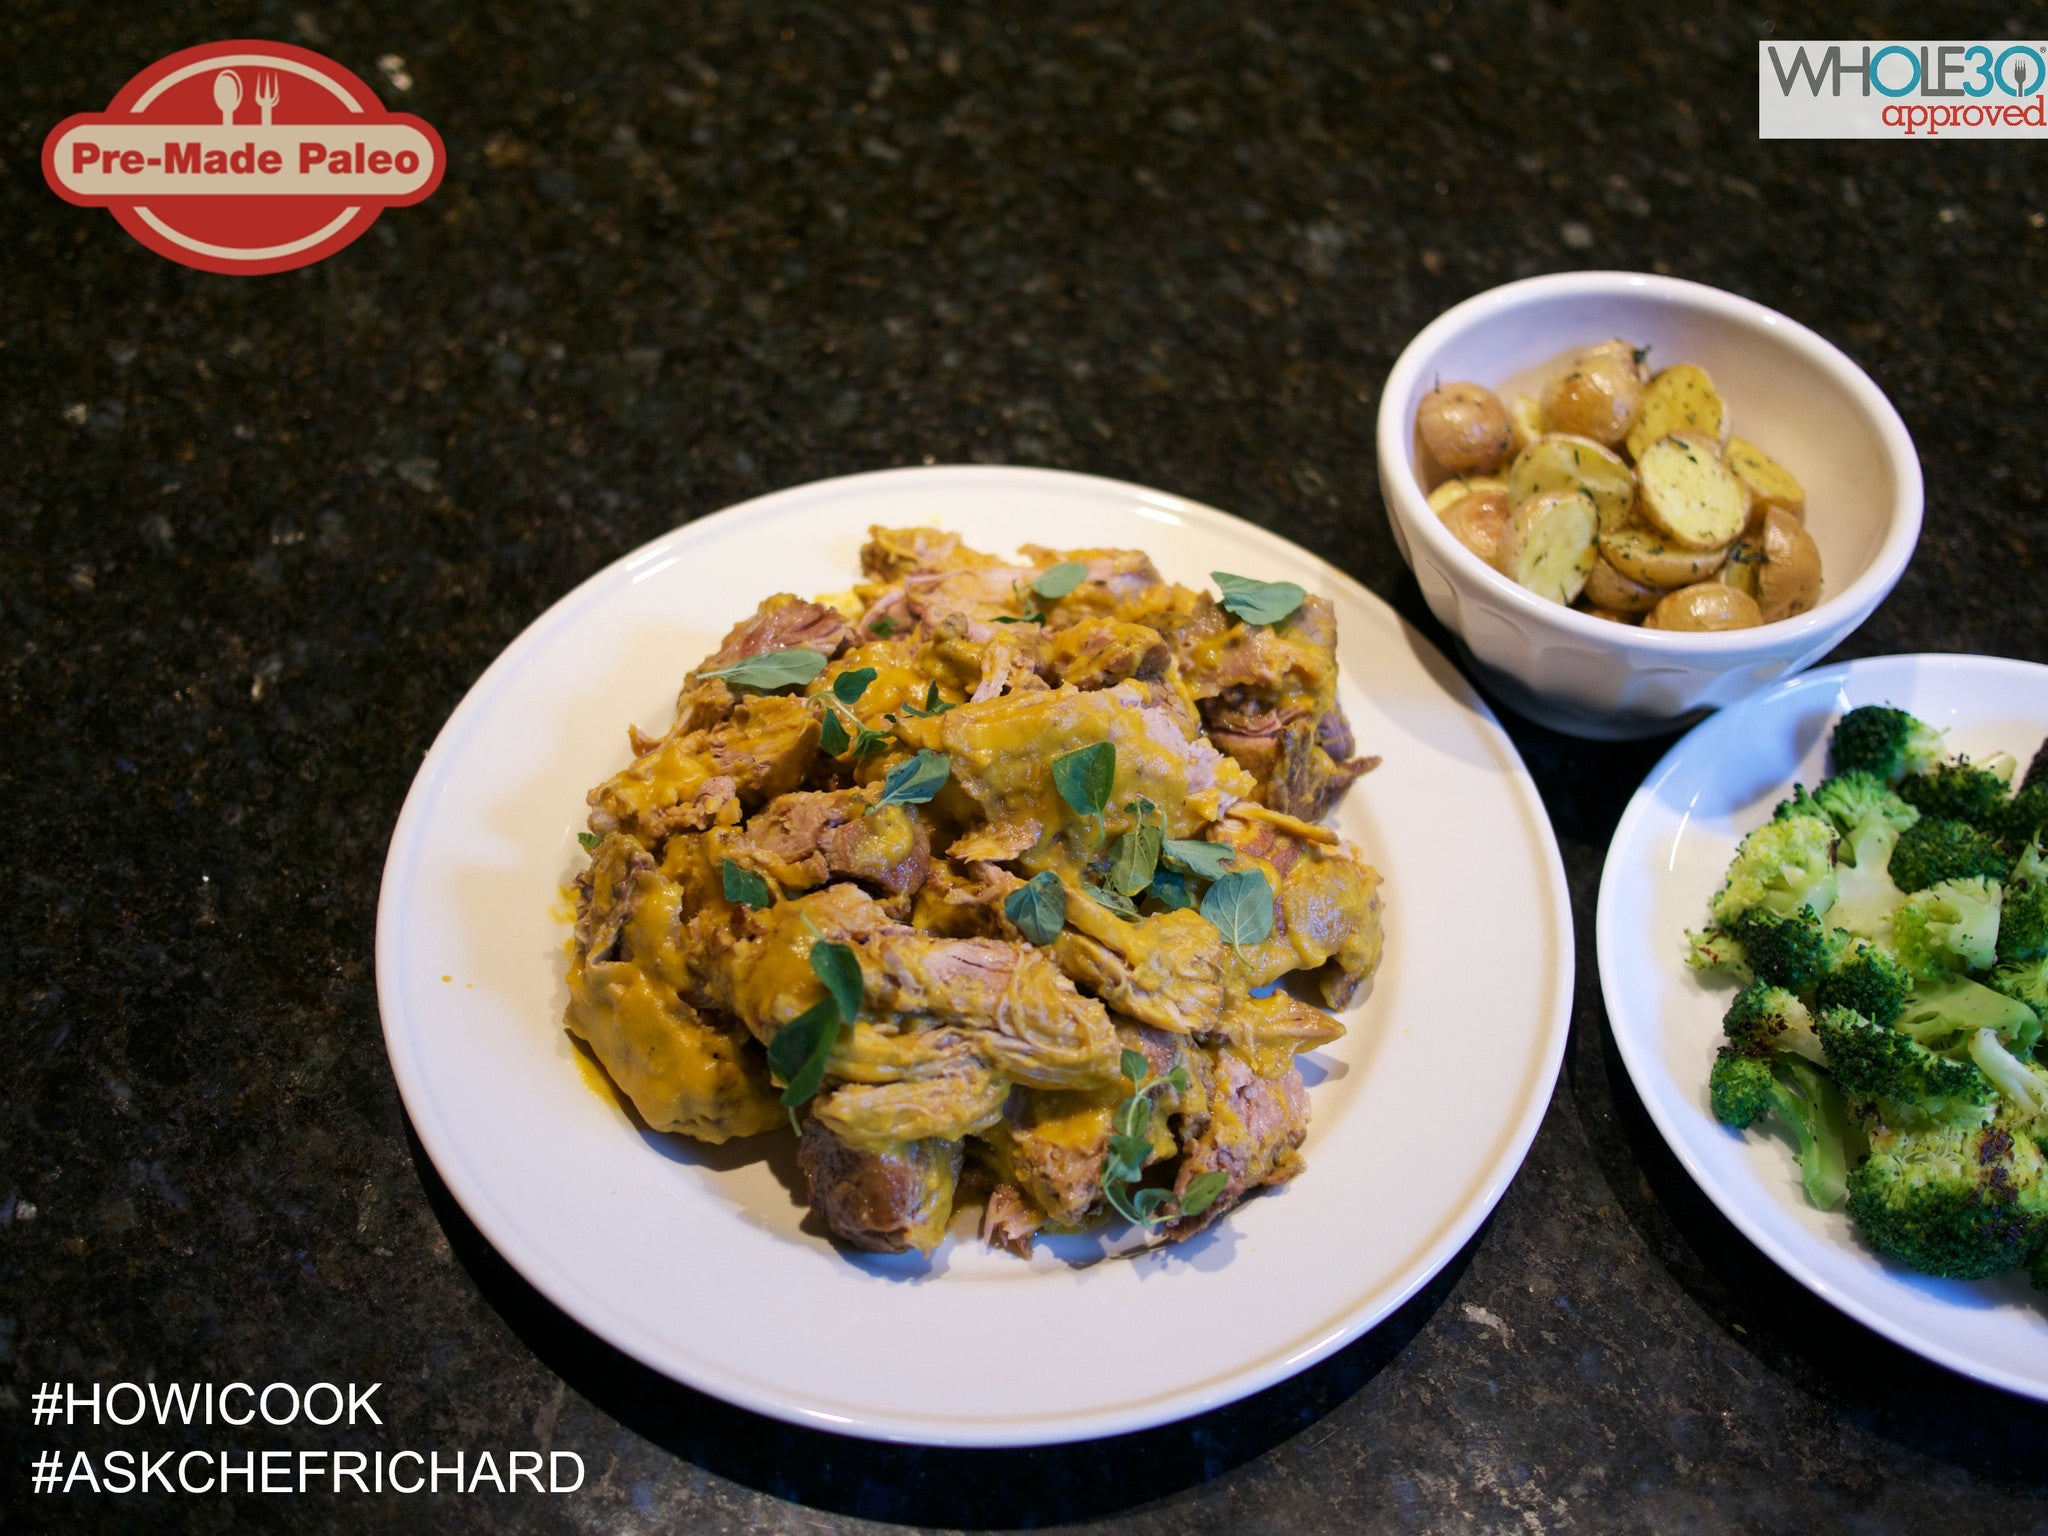 #HOWICOOK Recipe - Crock Pot Pork Roast